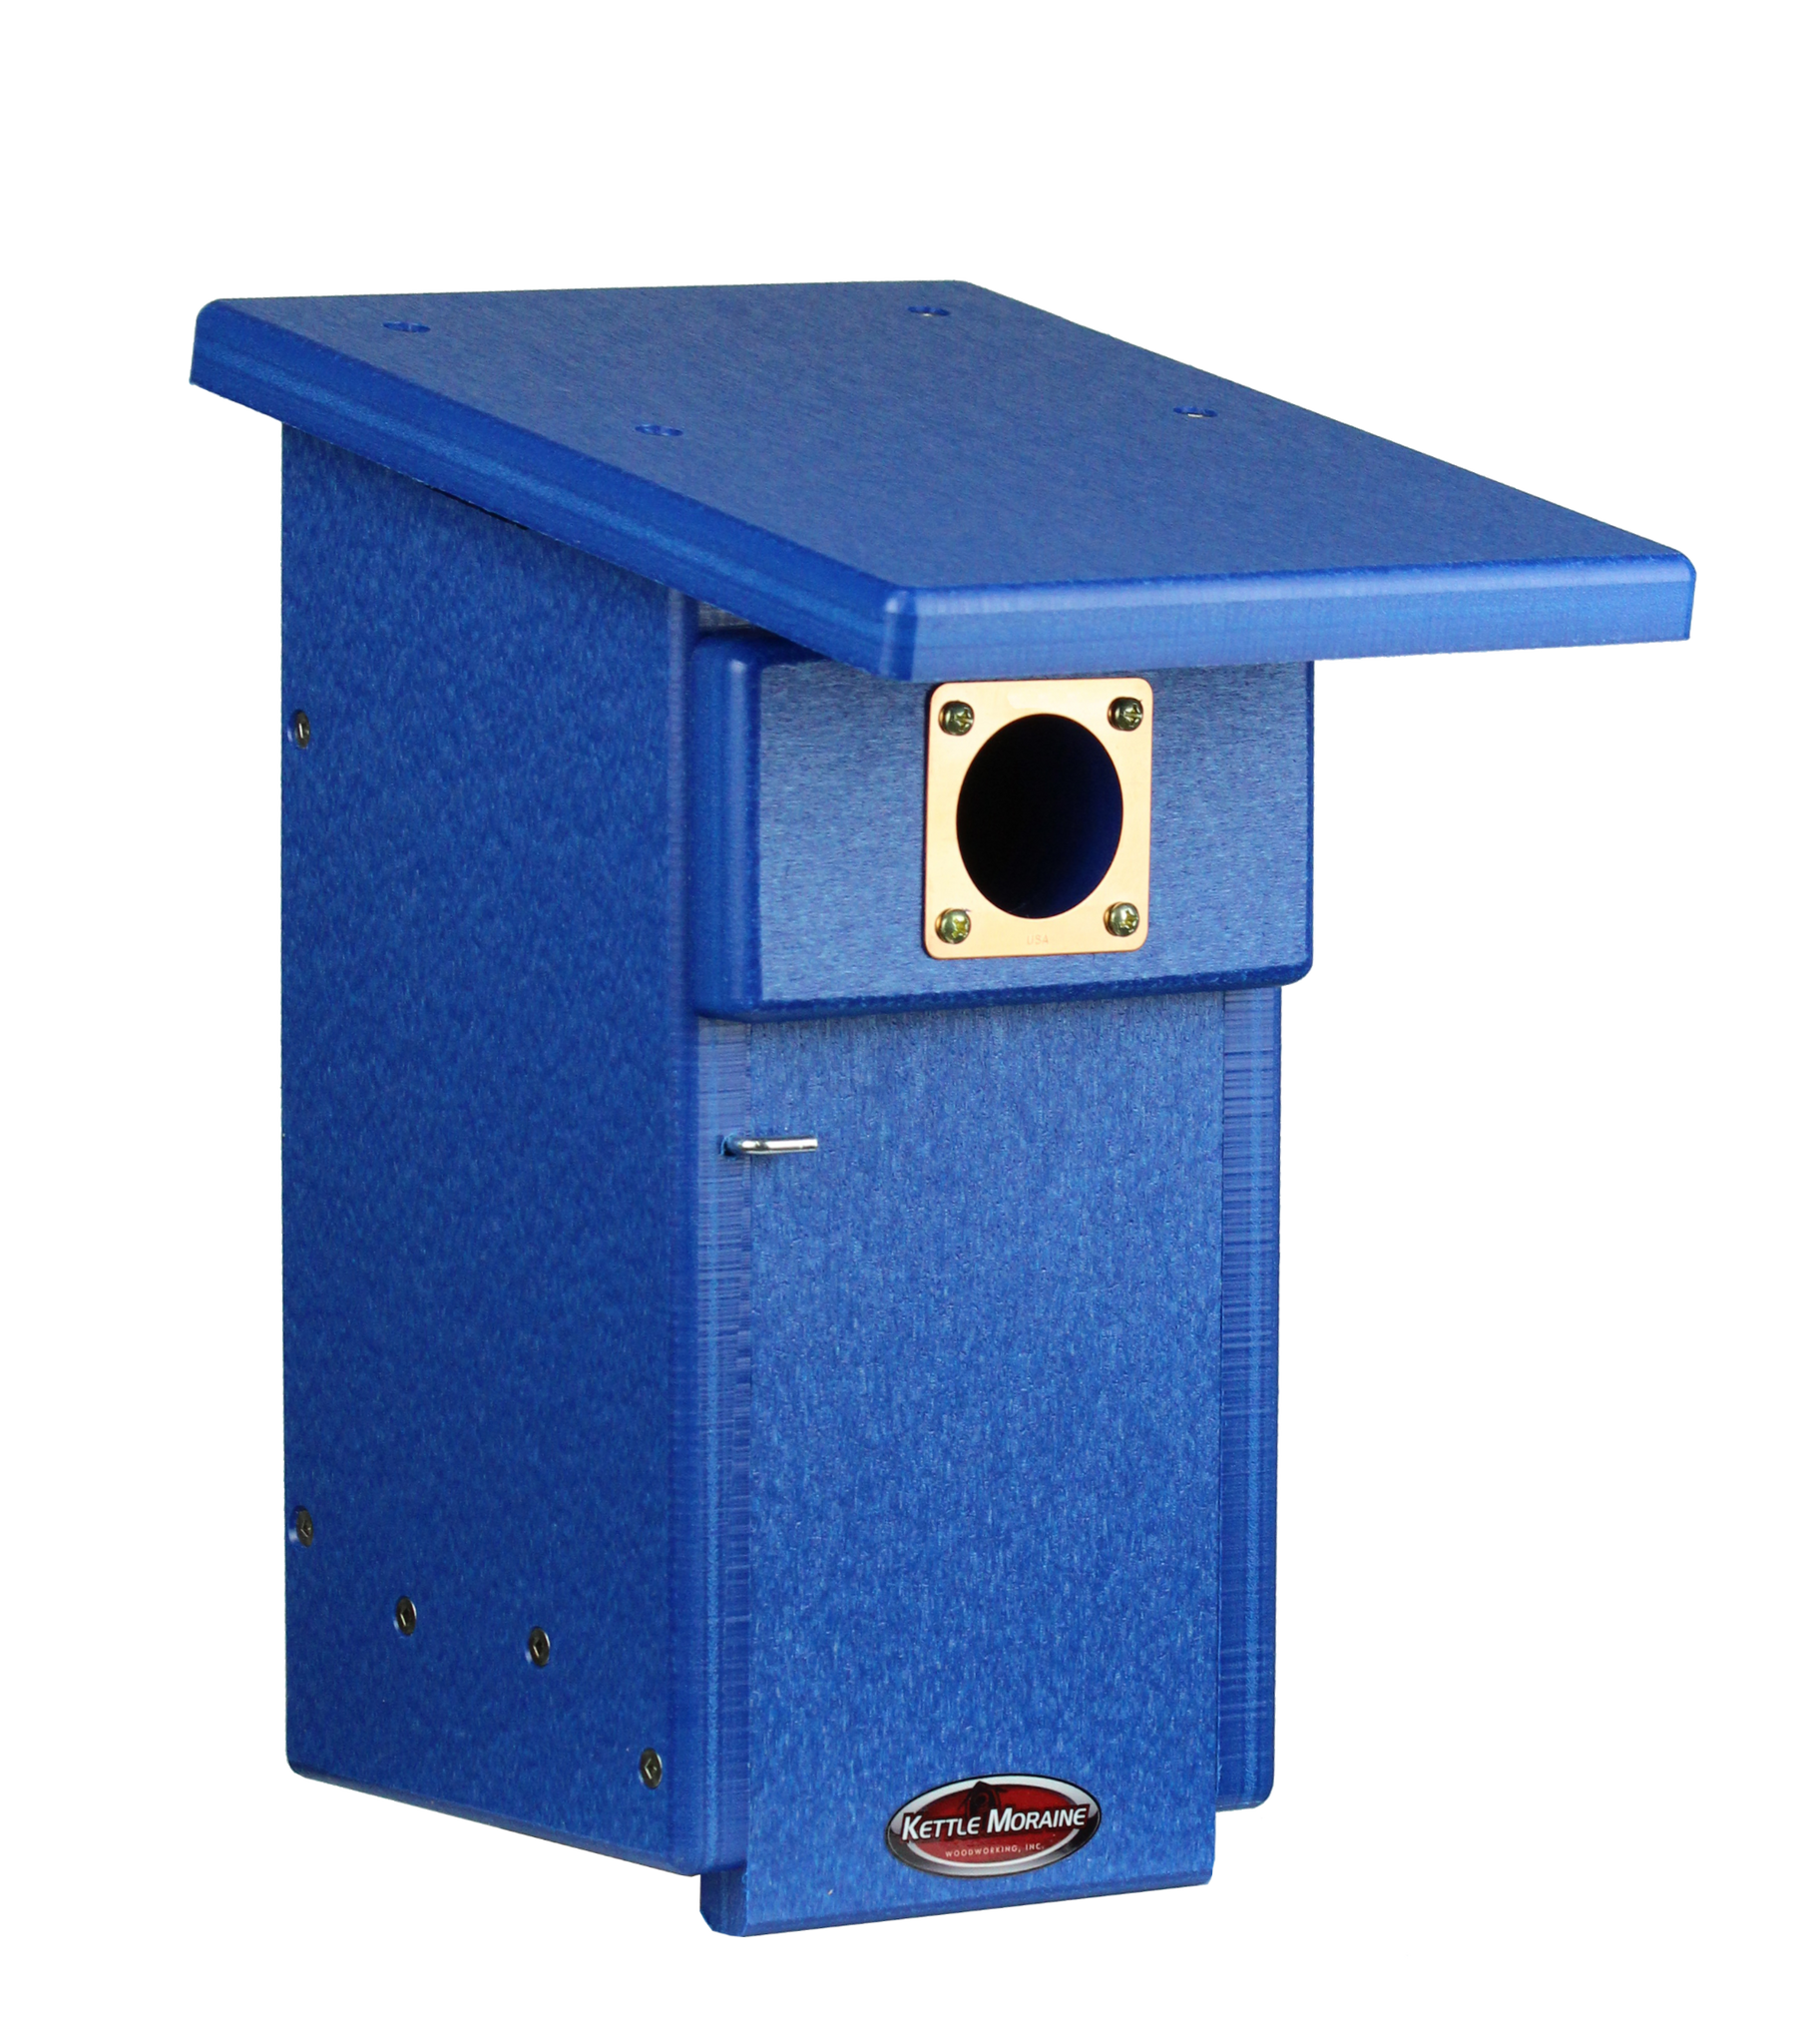 kettle moraine recycled blue plastic nest box